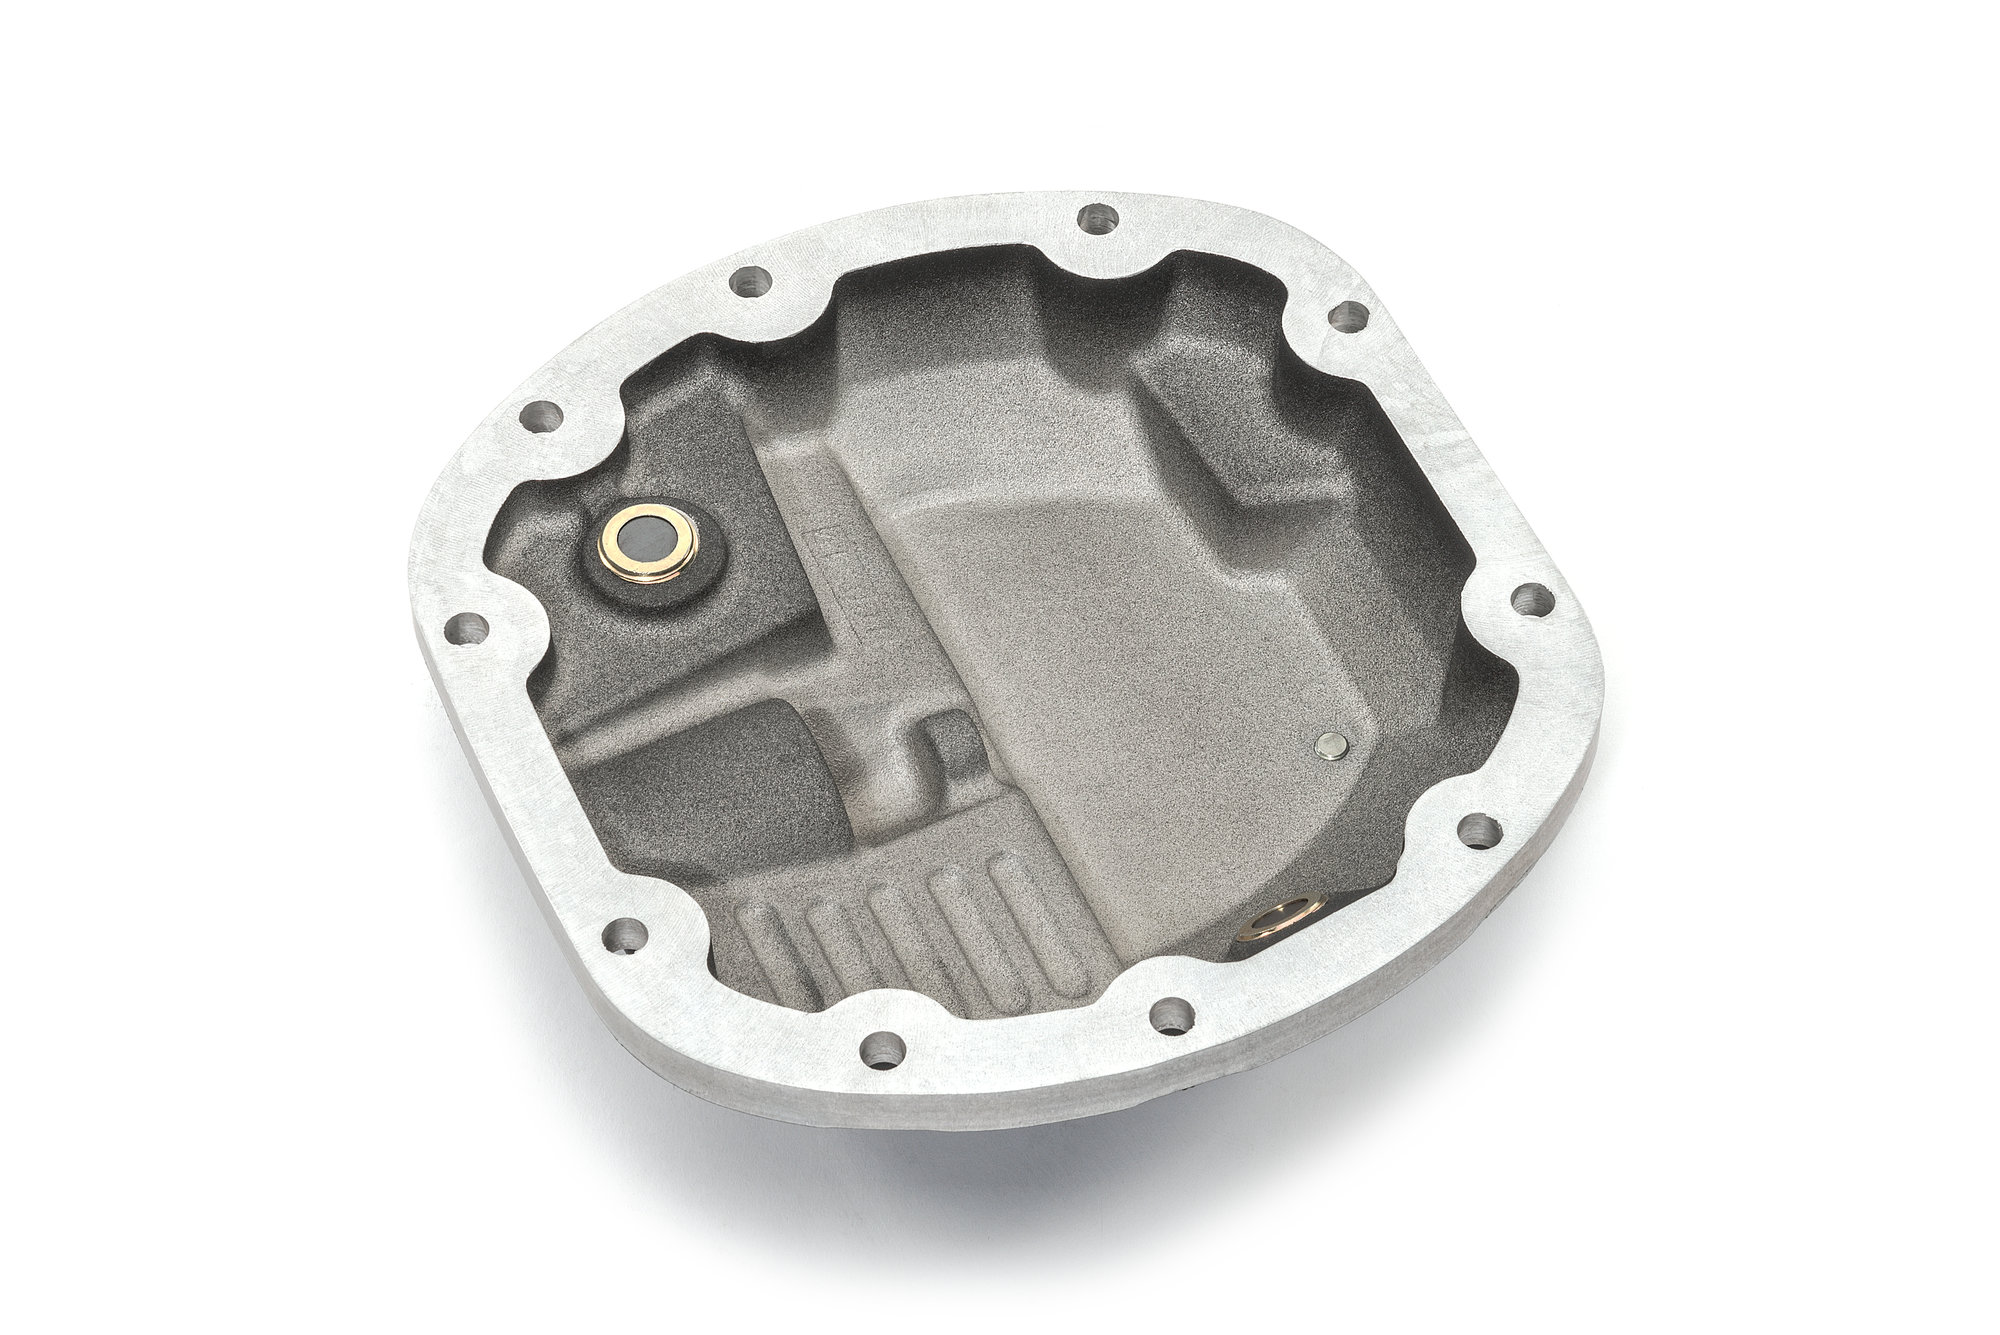 G2_Axle _ & _ Gear_40-2031MB_Brute_Aluminum_Differential_Cover_Inside